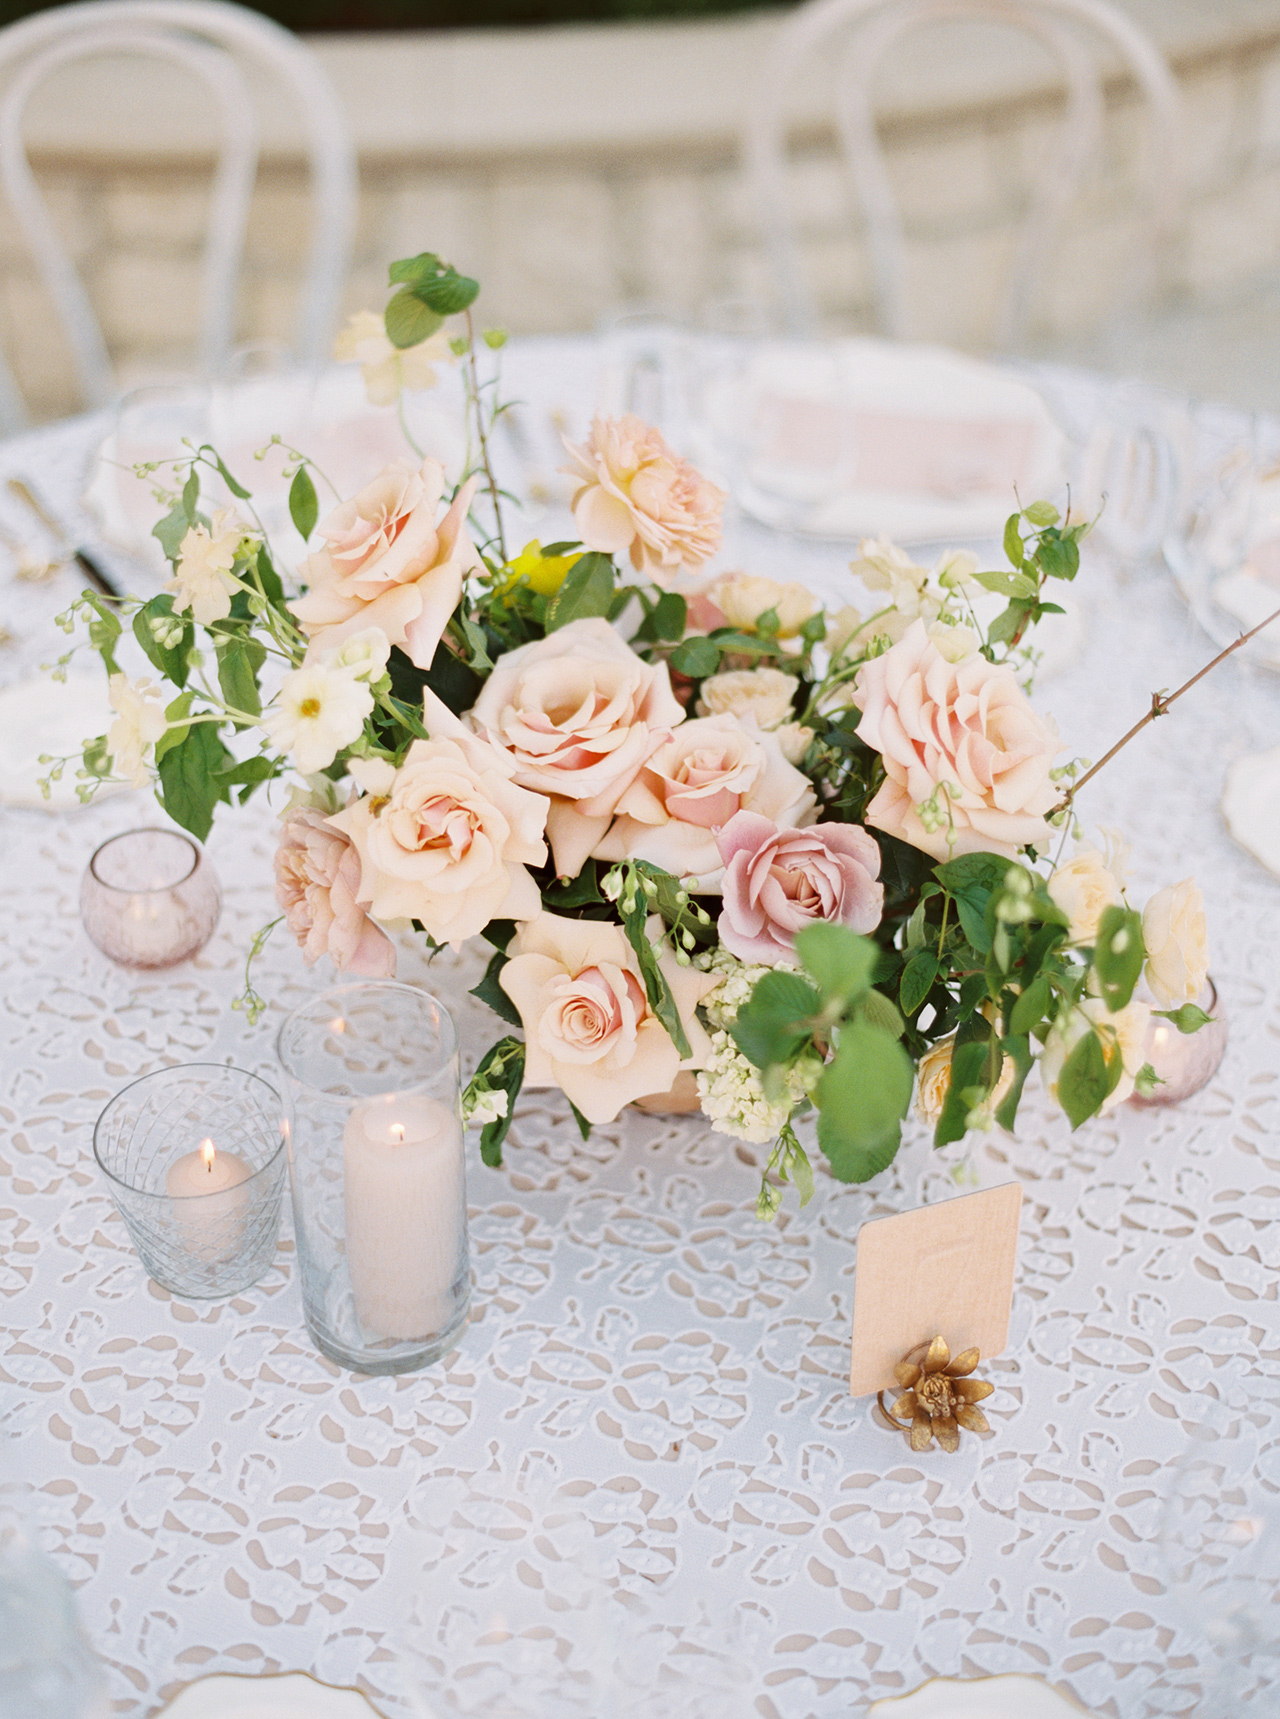 table centerpiece blush buttercup blooms lace table cloth